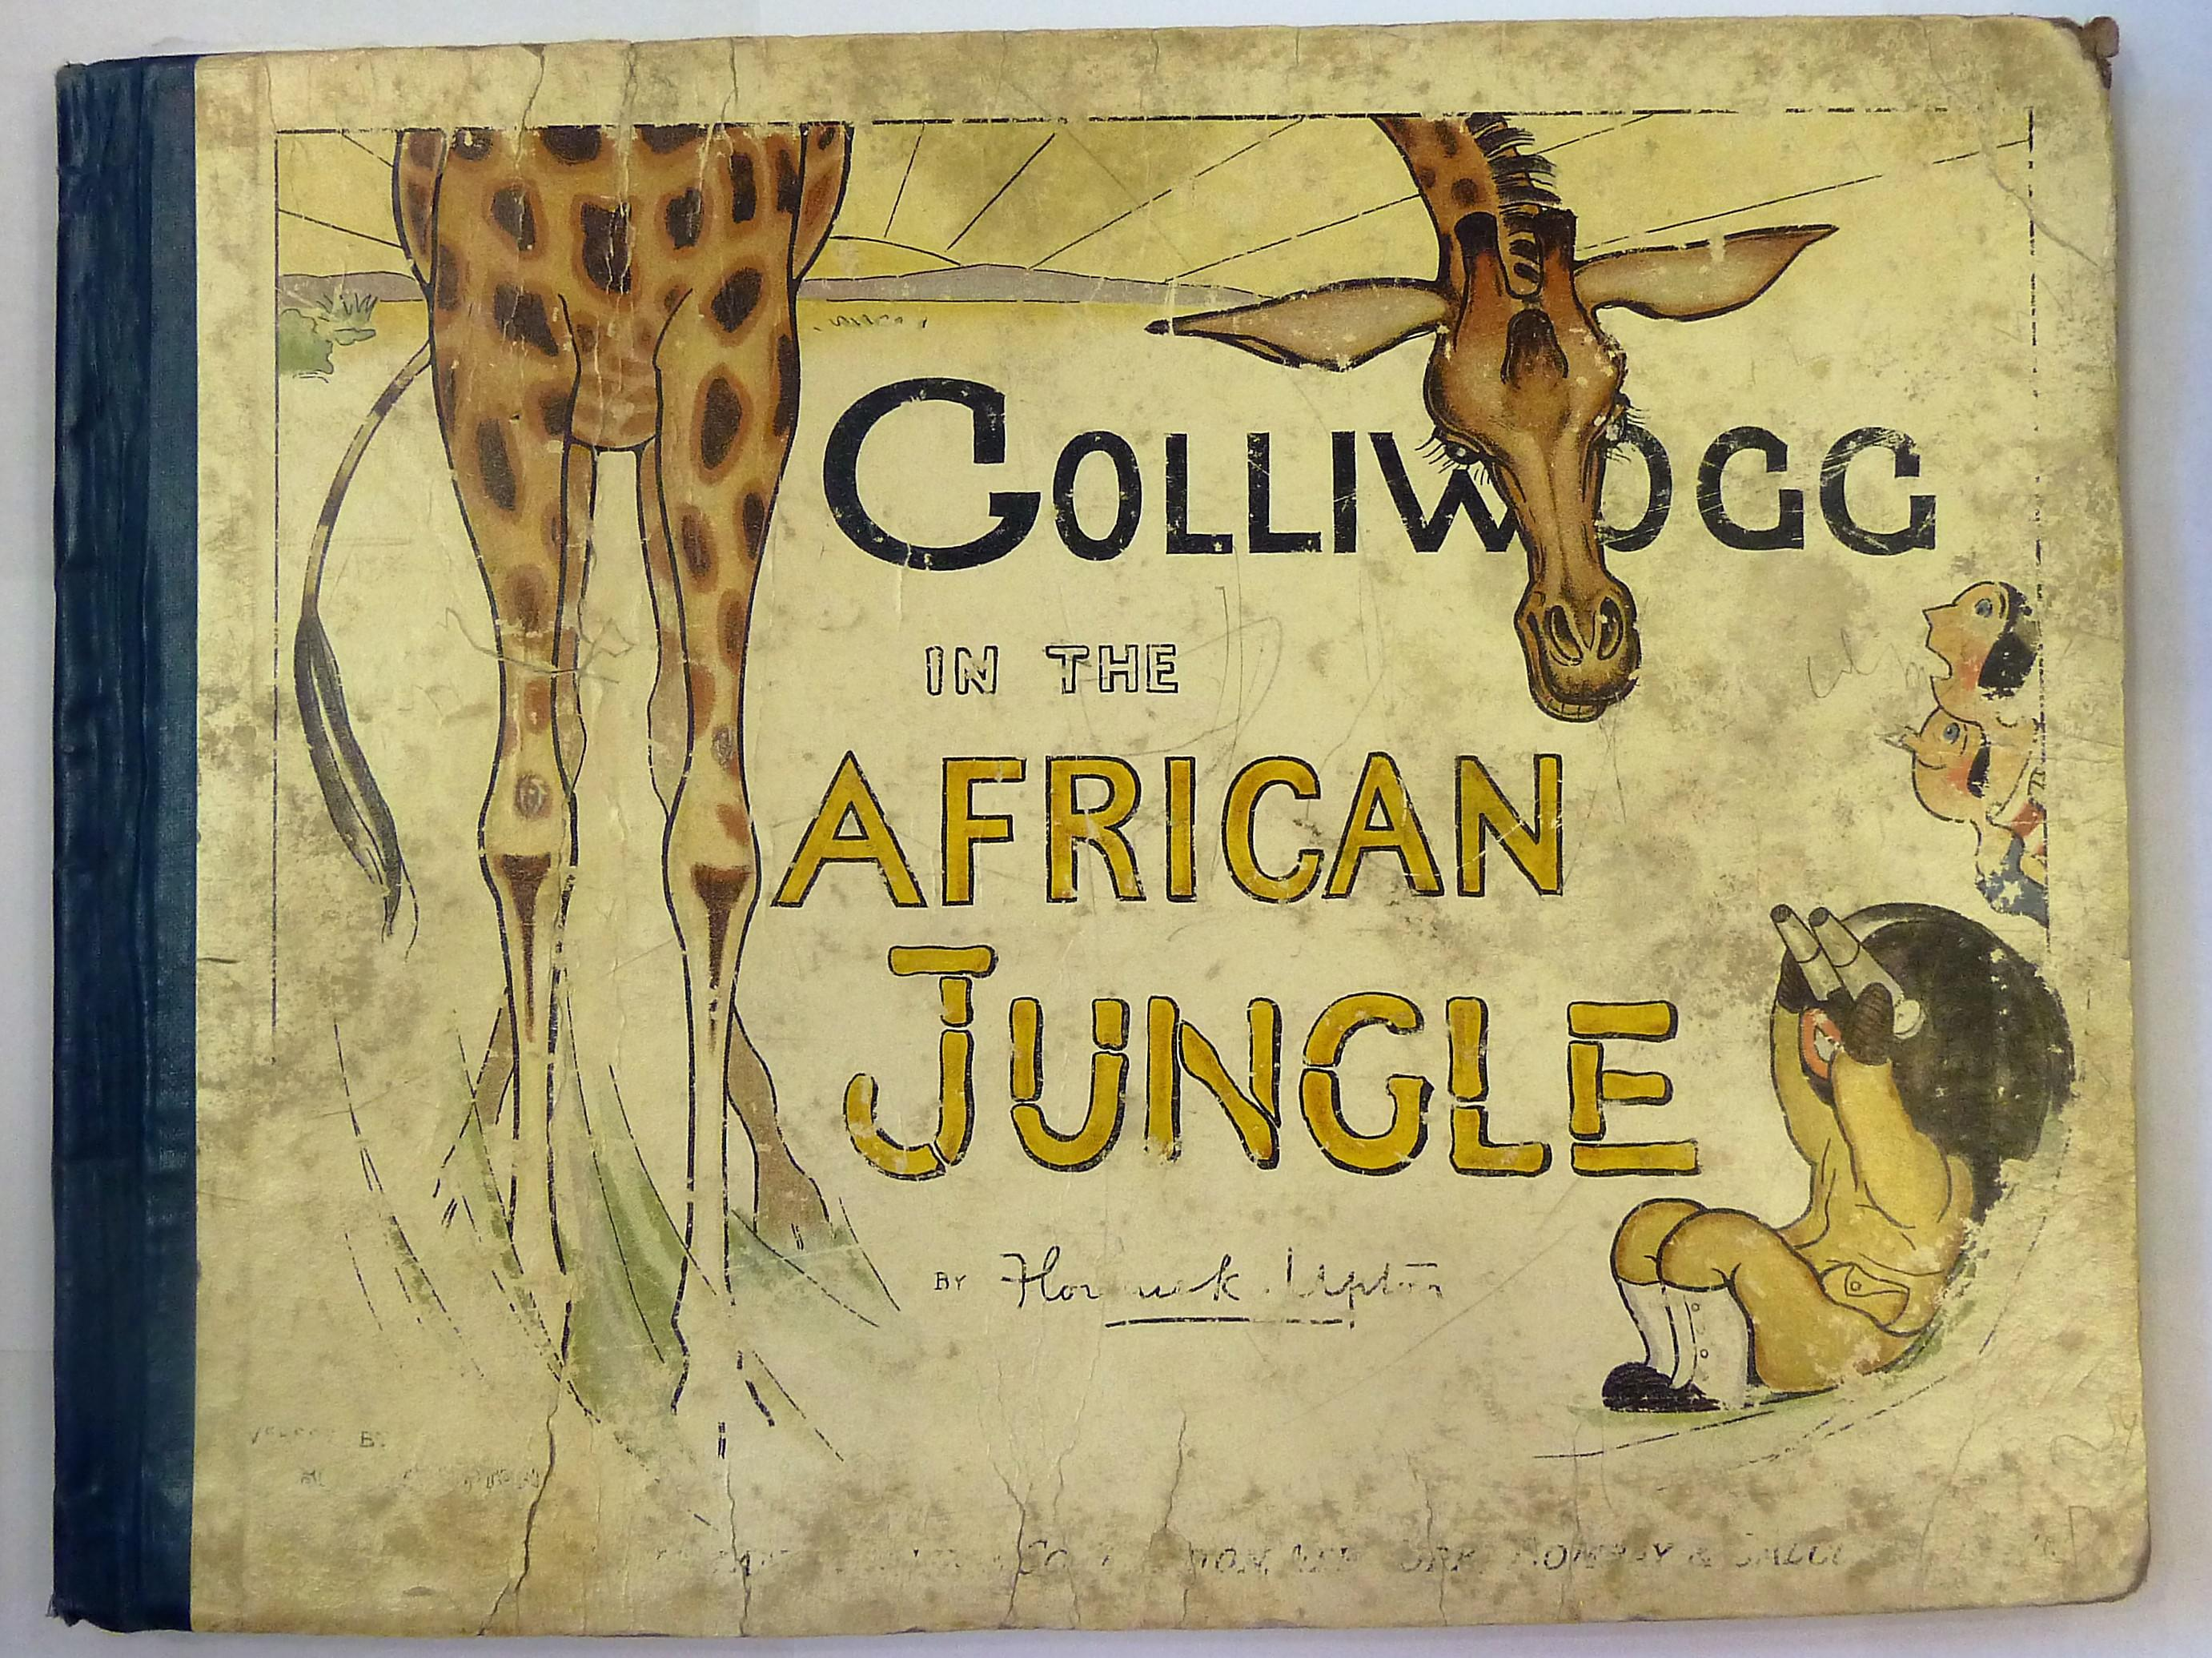 Golliwogg In the African Jungle